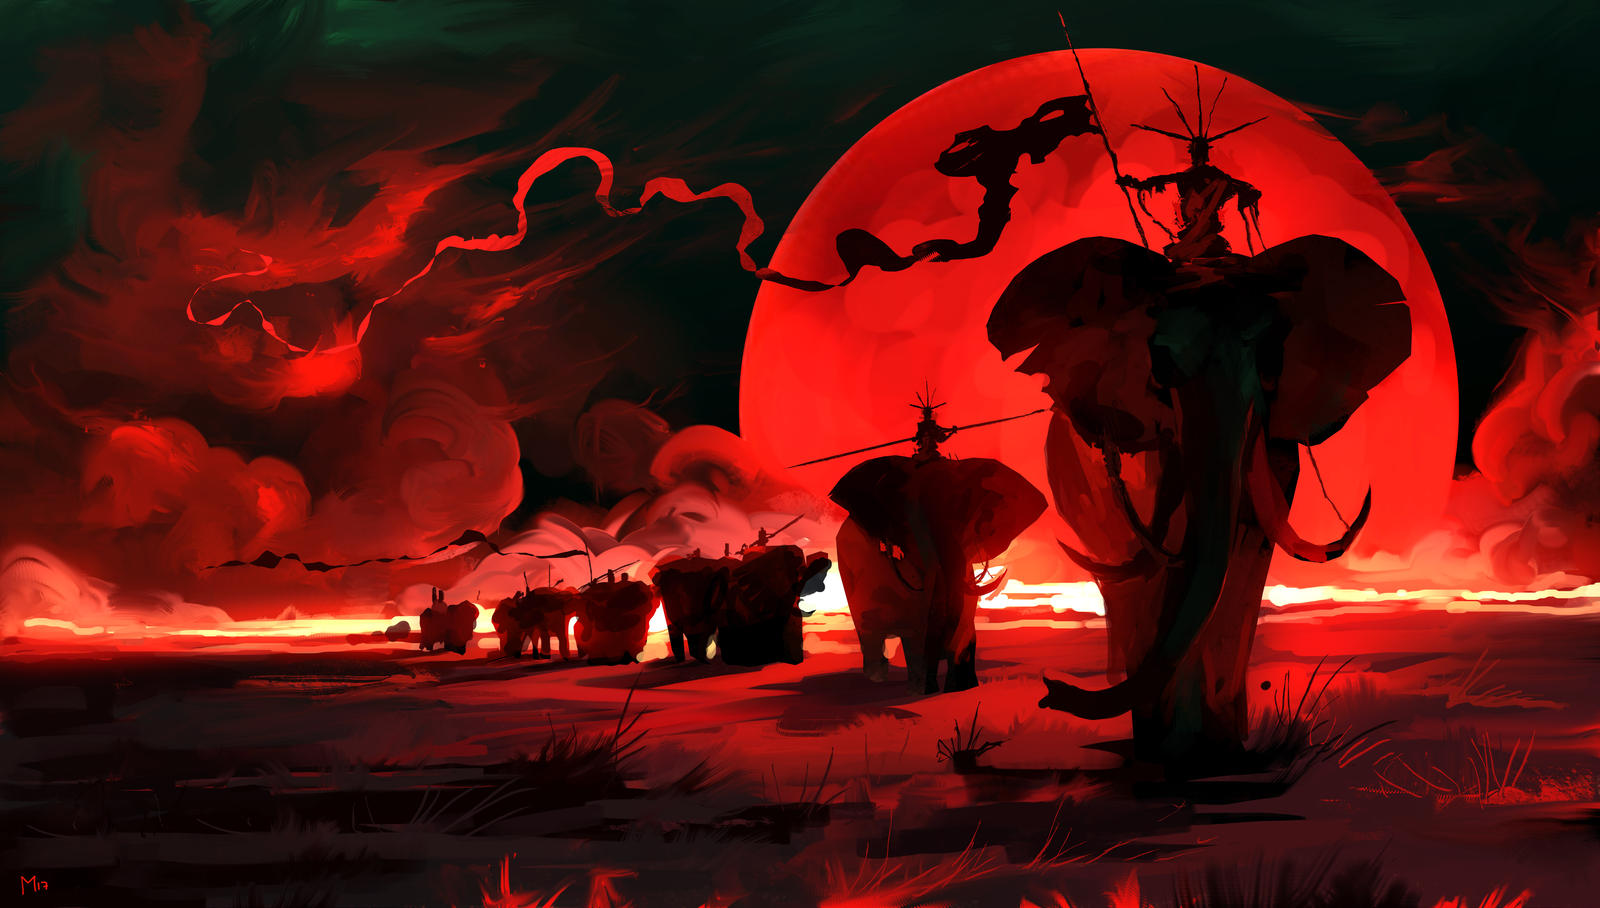 Red Moon by DominikMayer